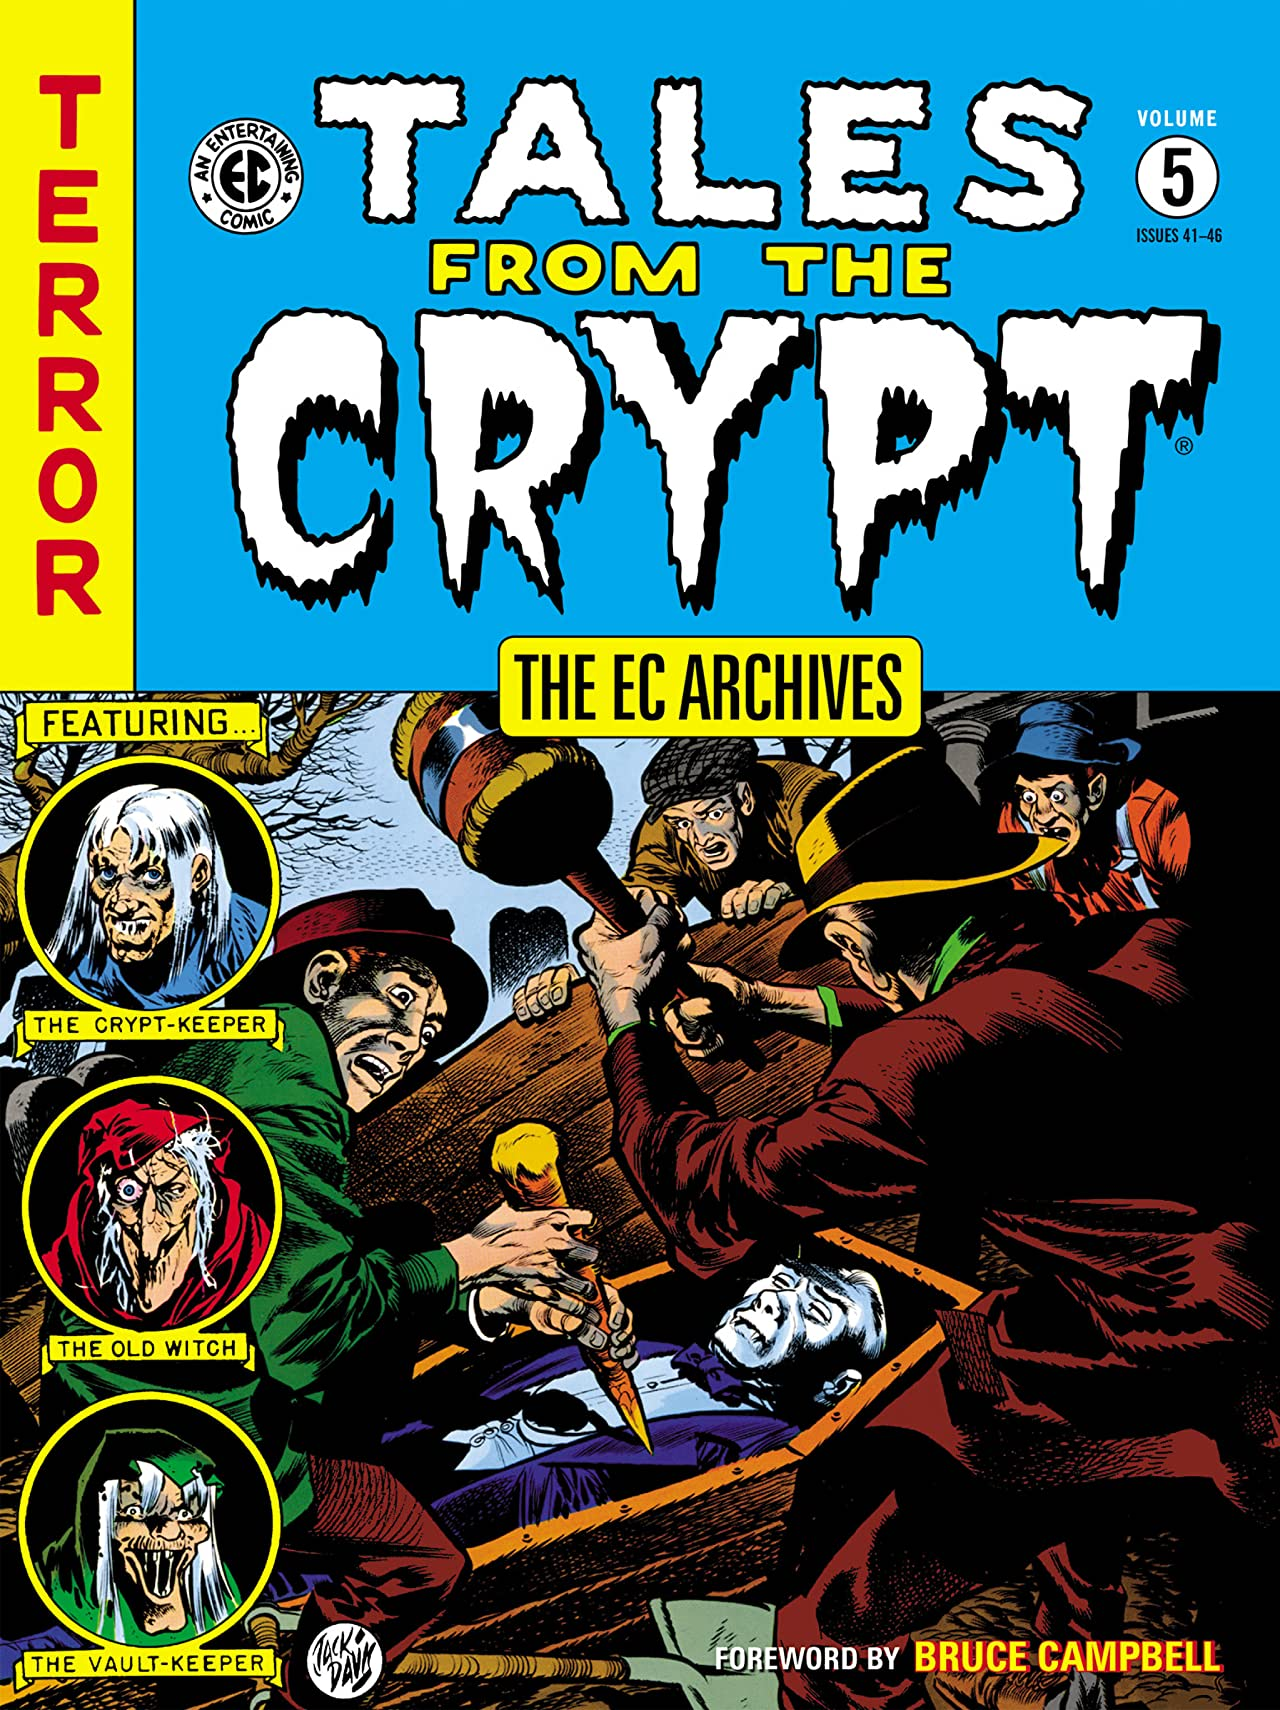 The EC Archives: Tales from the Crypt Vol. 5